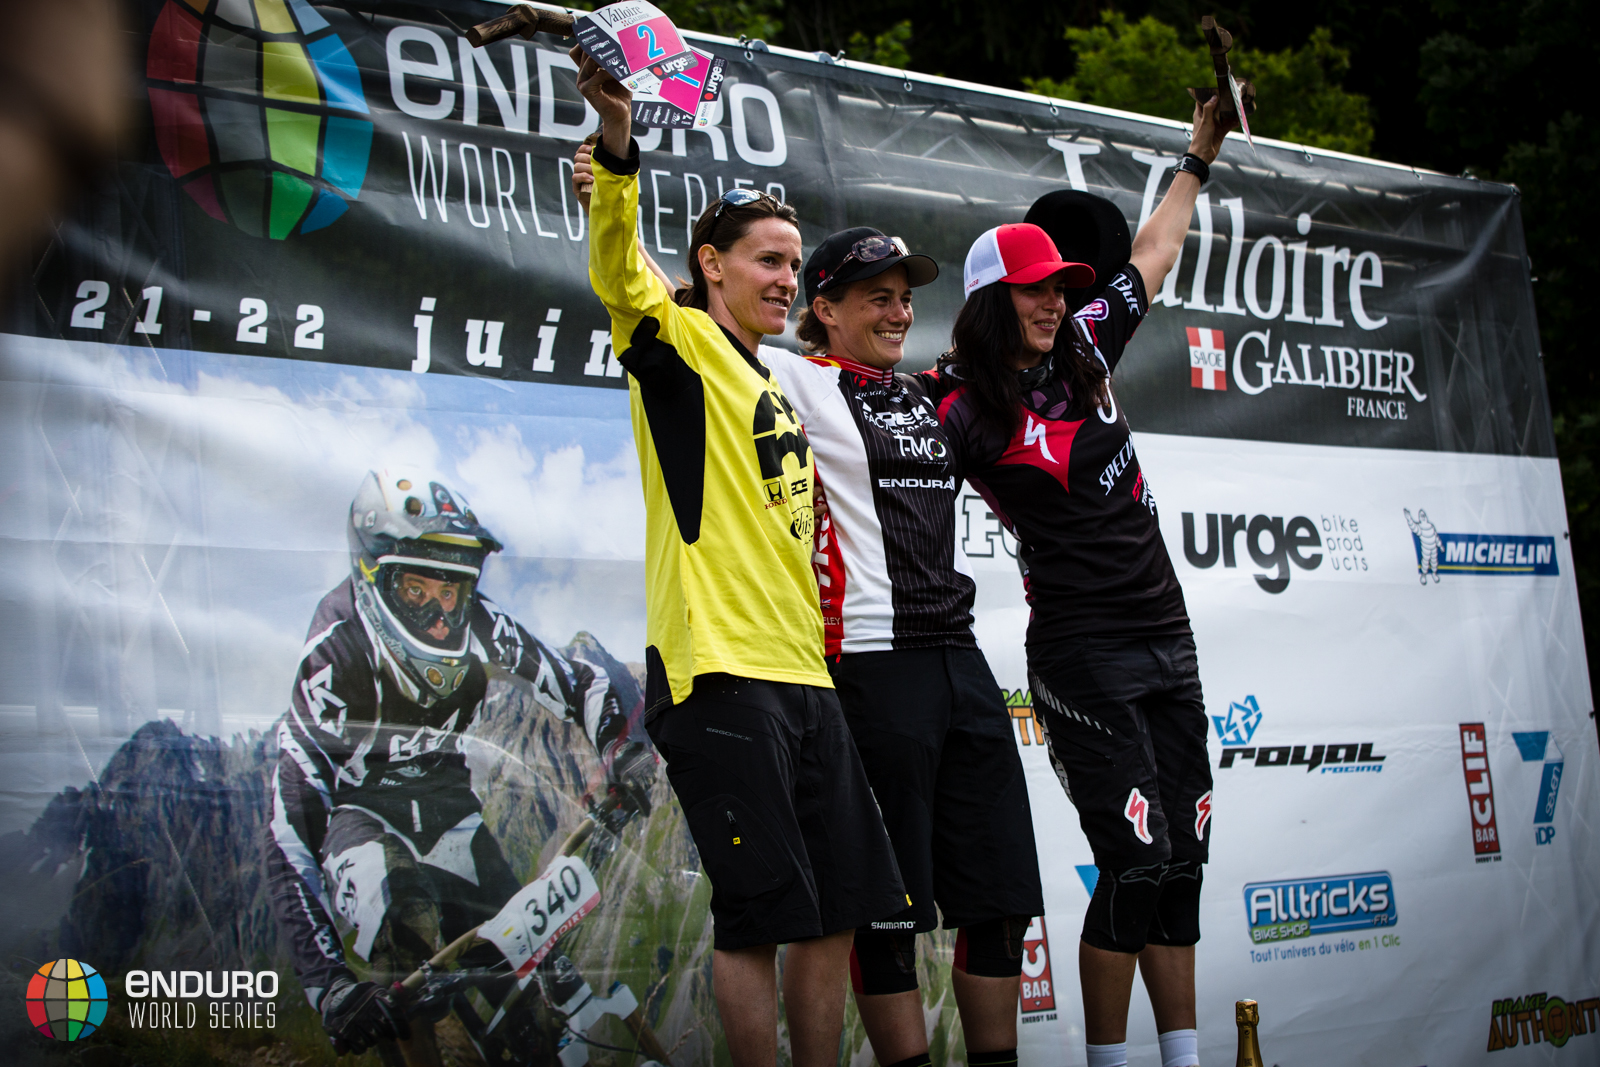 Womens podium, EWS round 3 2014, Valloire. Photo by Matt Wragg